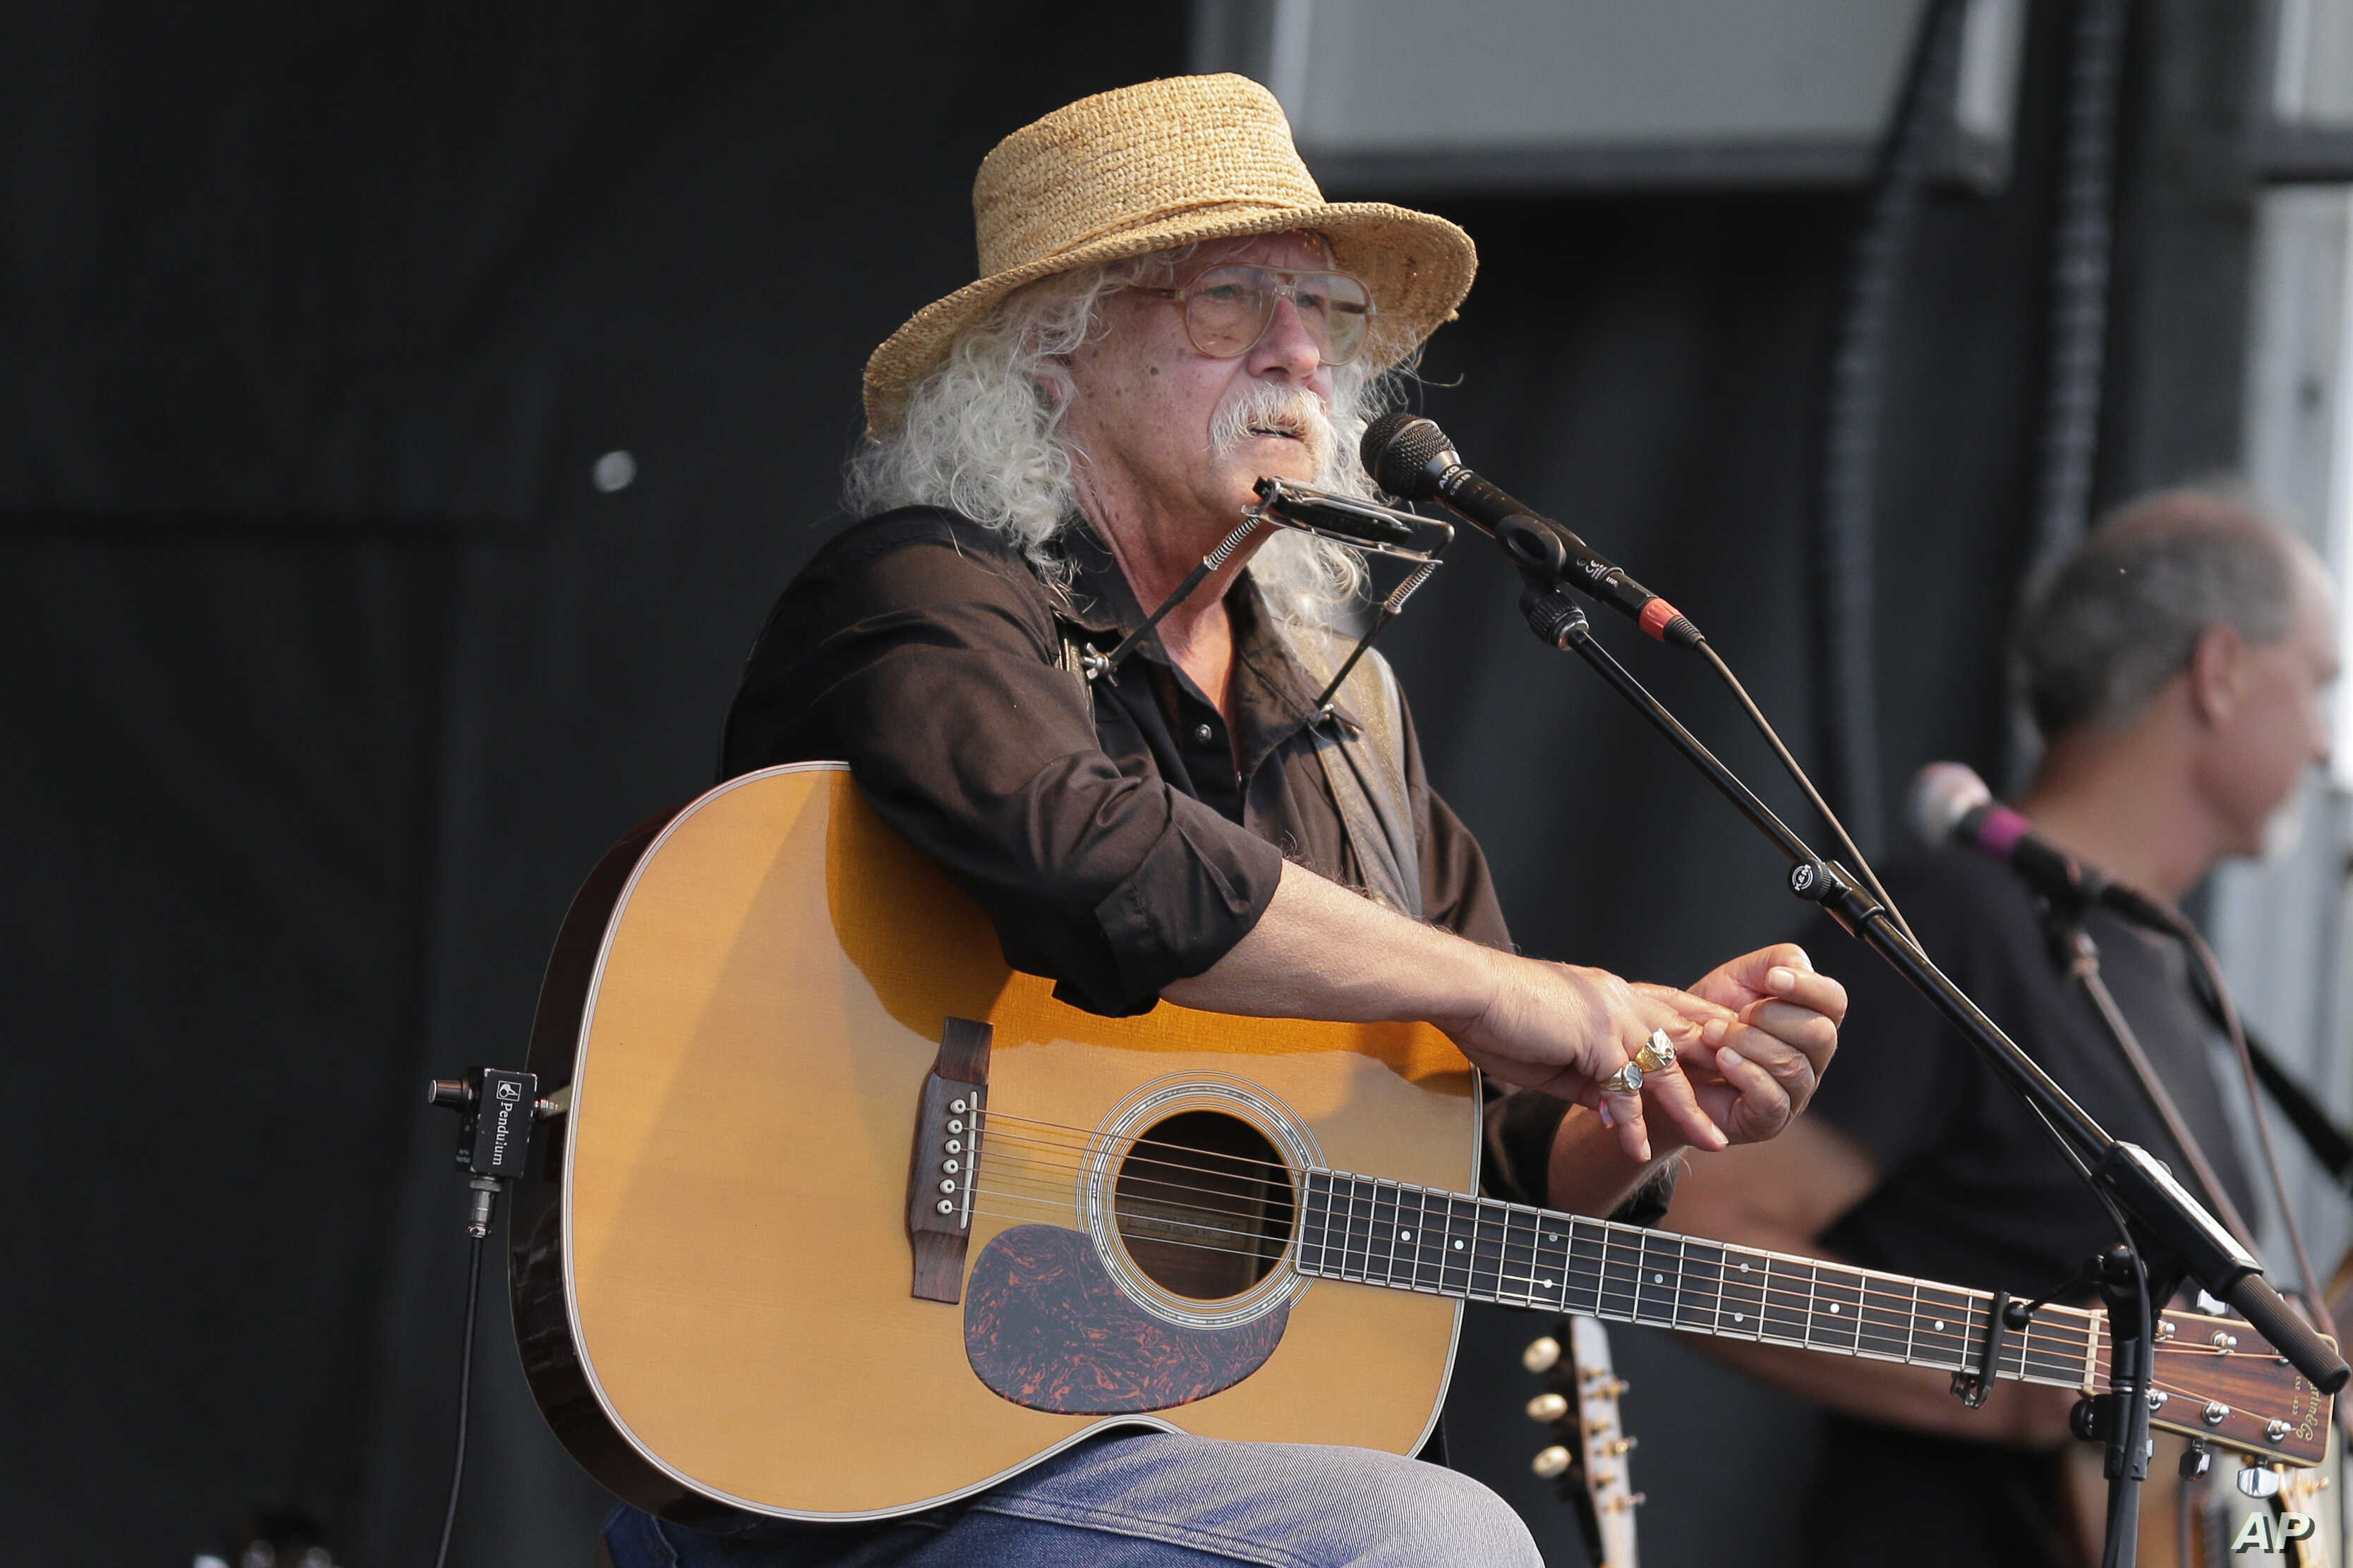 Arlo Guthrie talks during a concert at a Woodstock 50th anniversary event in Bethel, N.Y., Aug. 15, 2019. Bethel Woods Center for the Arts is hosting a series of events Thursday through Sunday at the bucolic 1969 concert site.